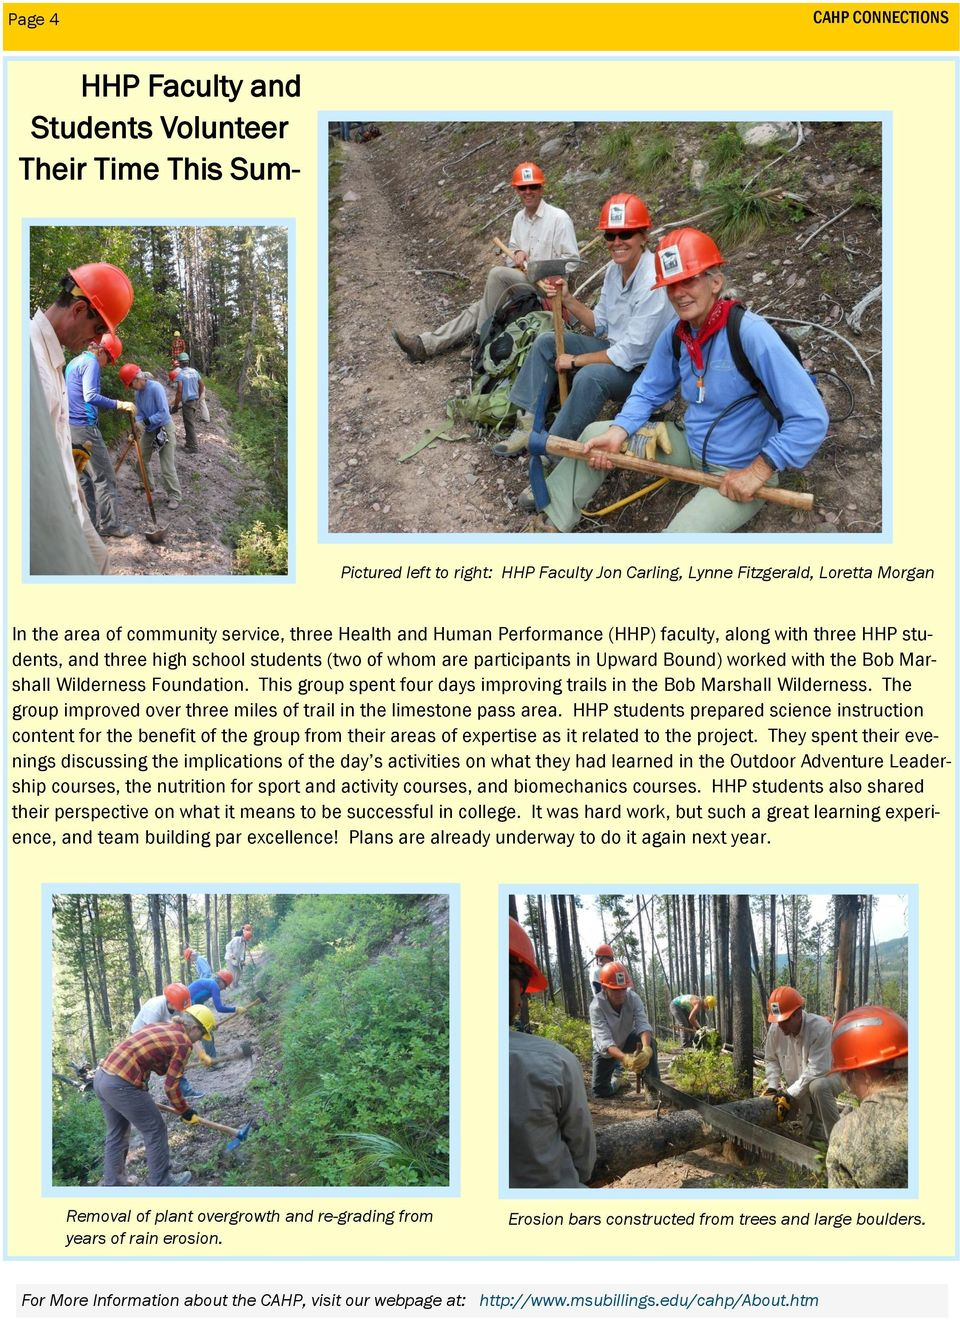 This group spent four days improving trails in the Bob Marshall Wilderness. The group improved over three miles of trail in the limestone pass area.